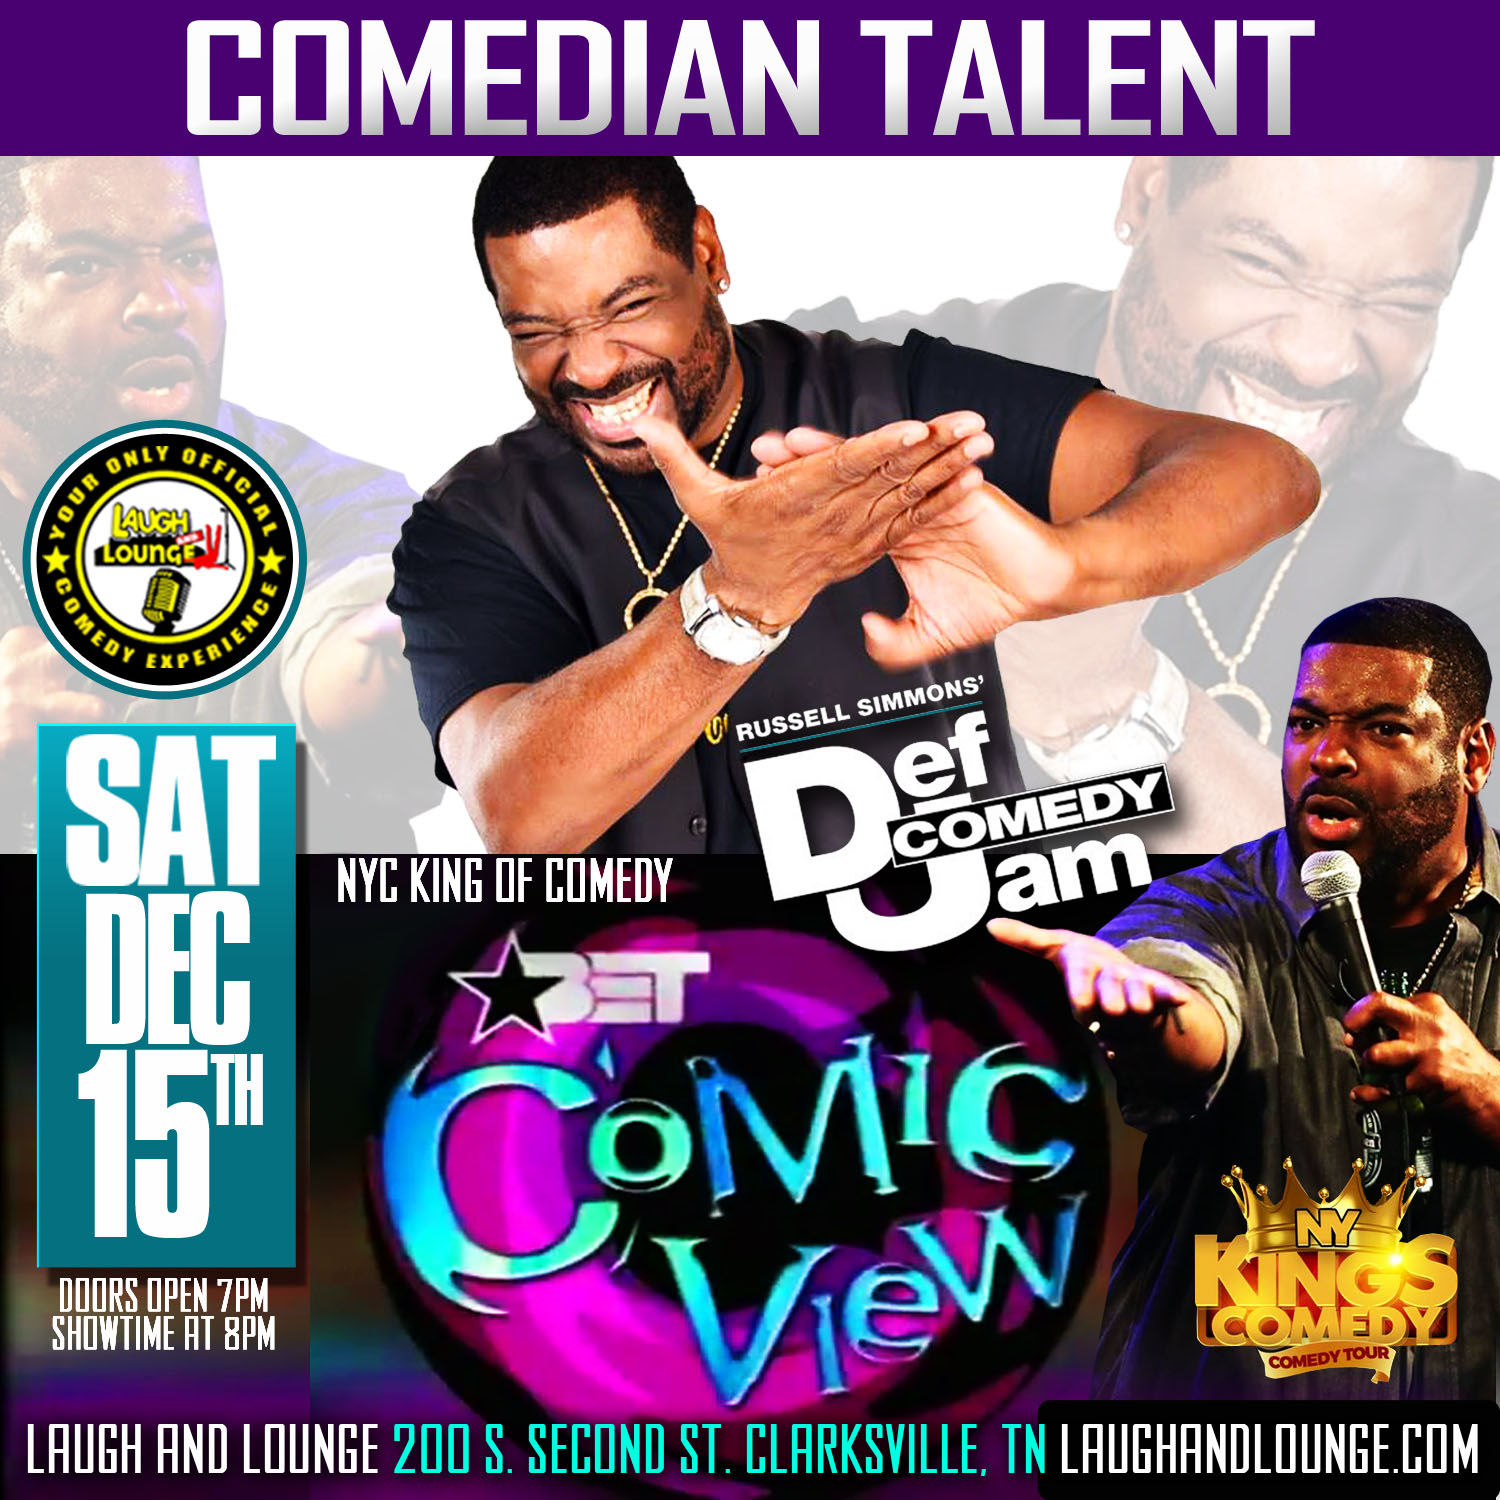 LAUGH AND LOUNGE COMEDIAN TALENT